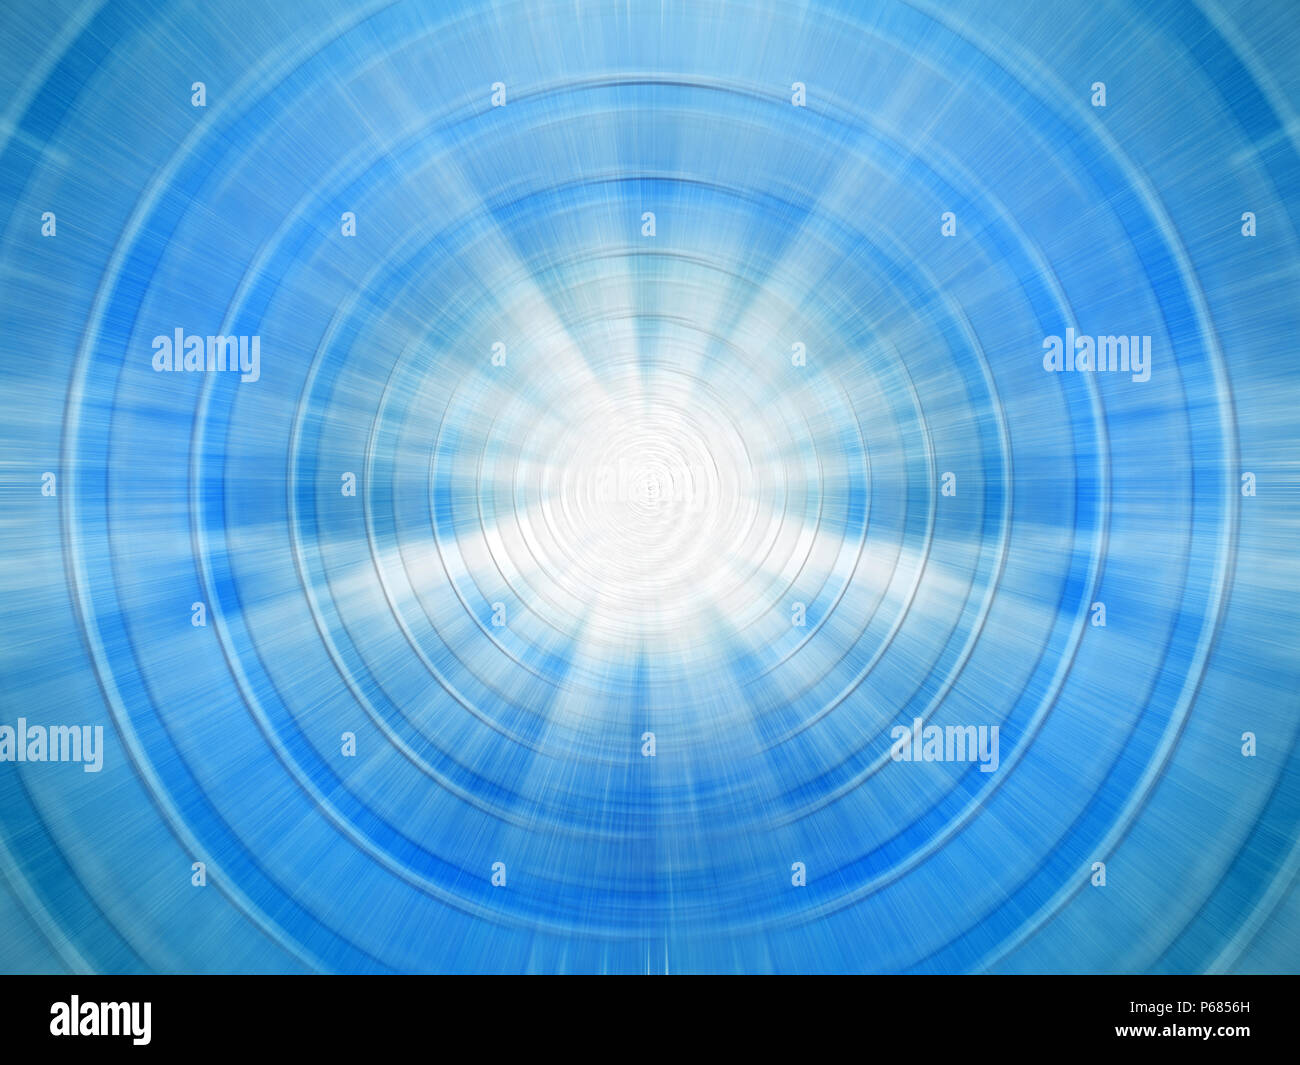 background image of defocused abstract lights and beam of light over blue background - Stock Image